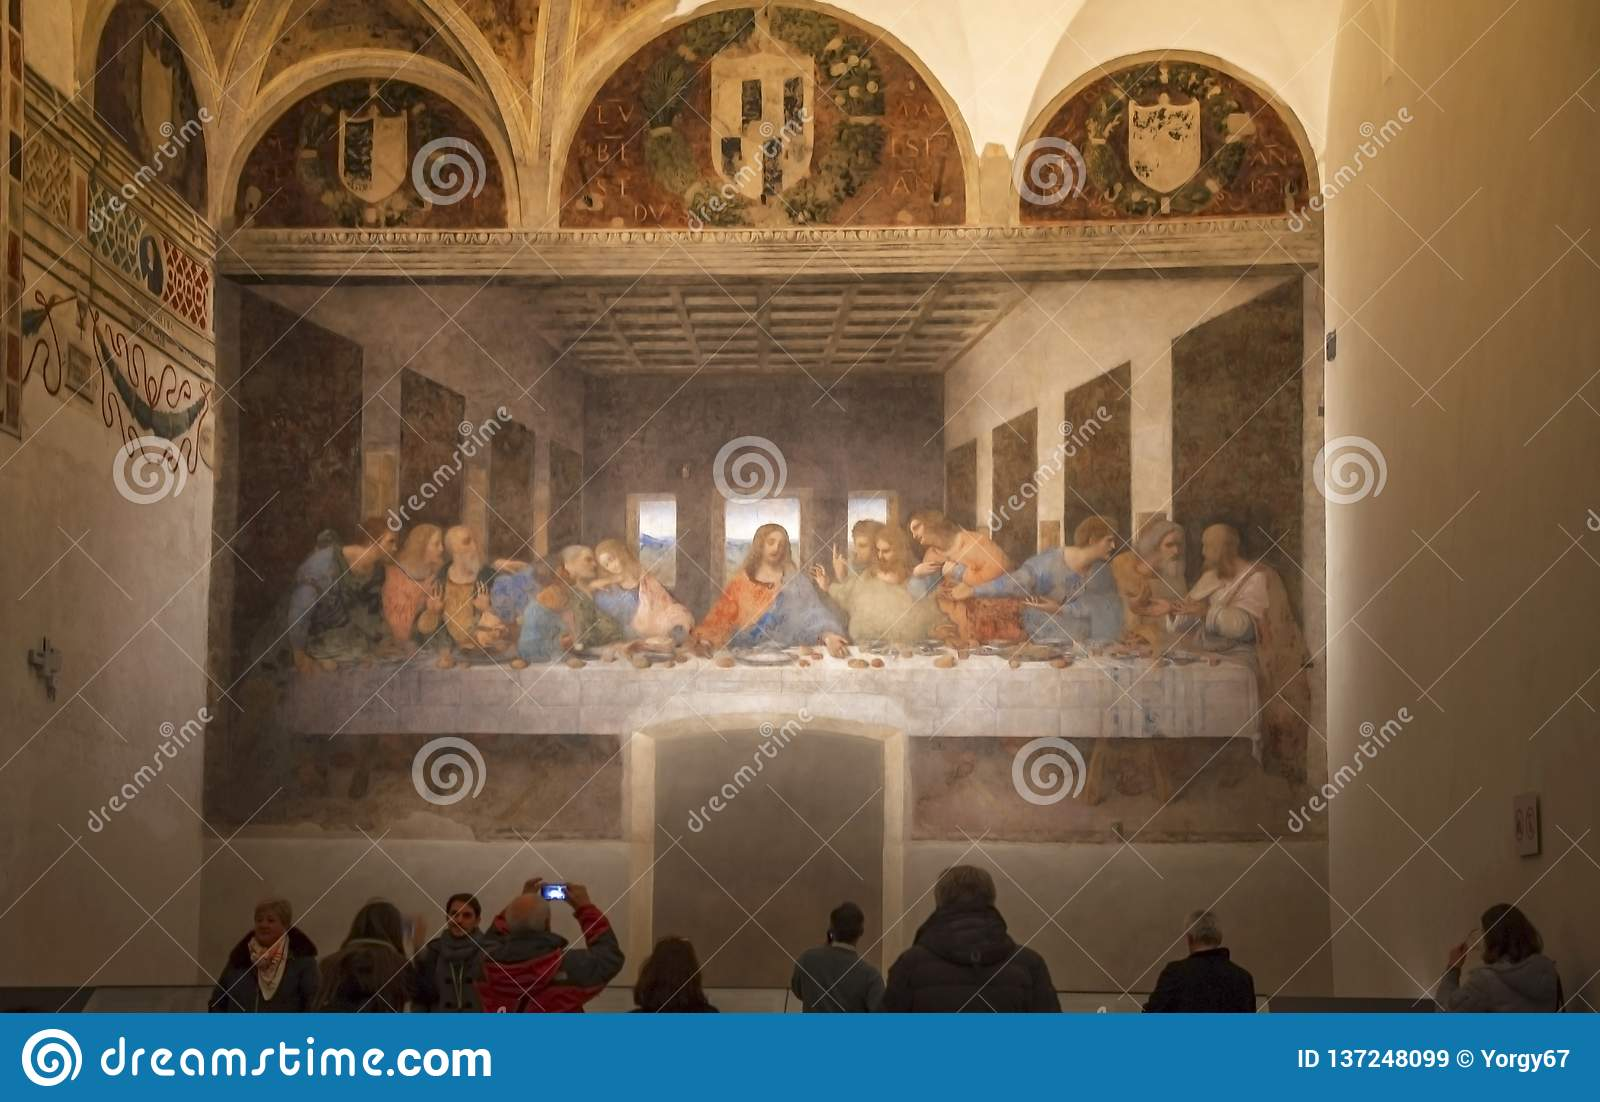 The Last Supper in Milan